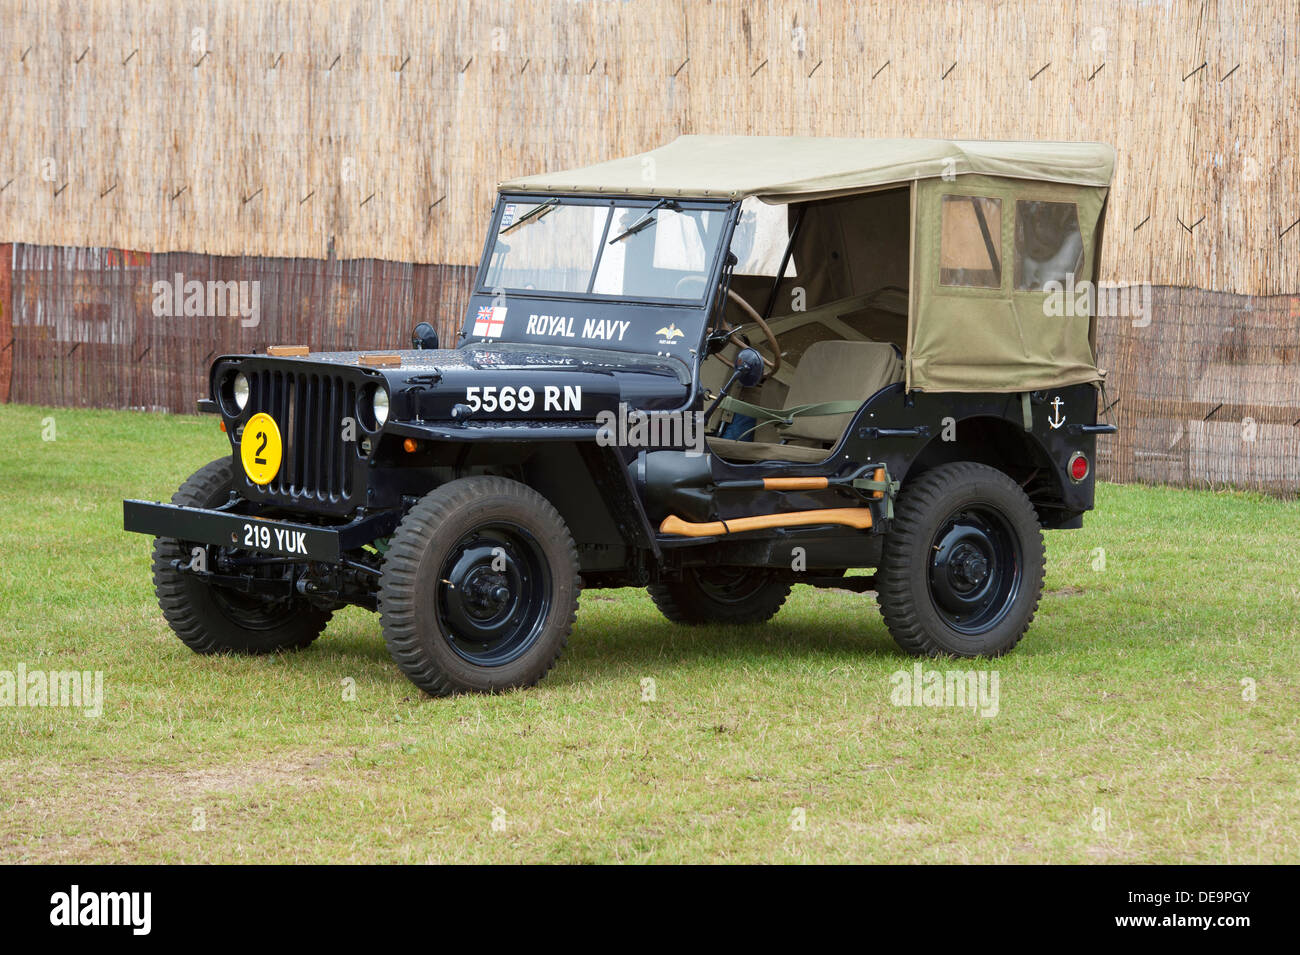 Navy Jeep Stock Photos & Navy Jeep Stock Images - Alamy